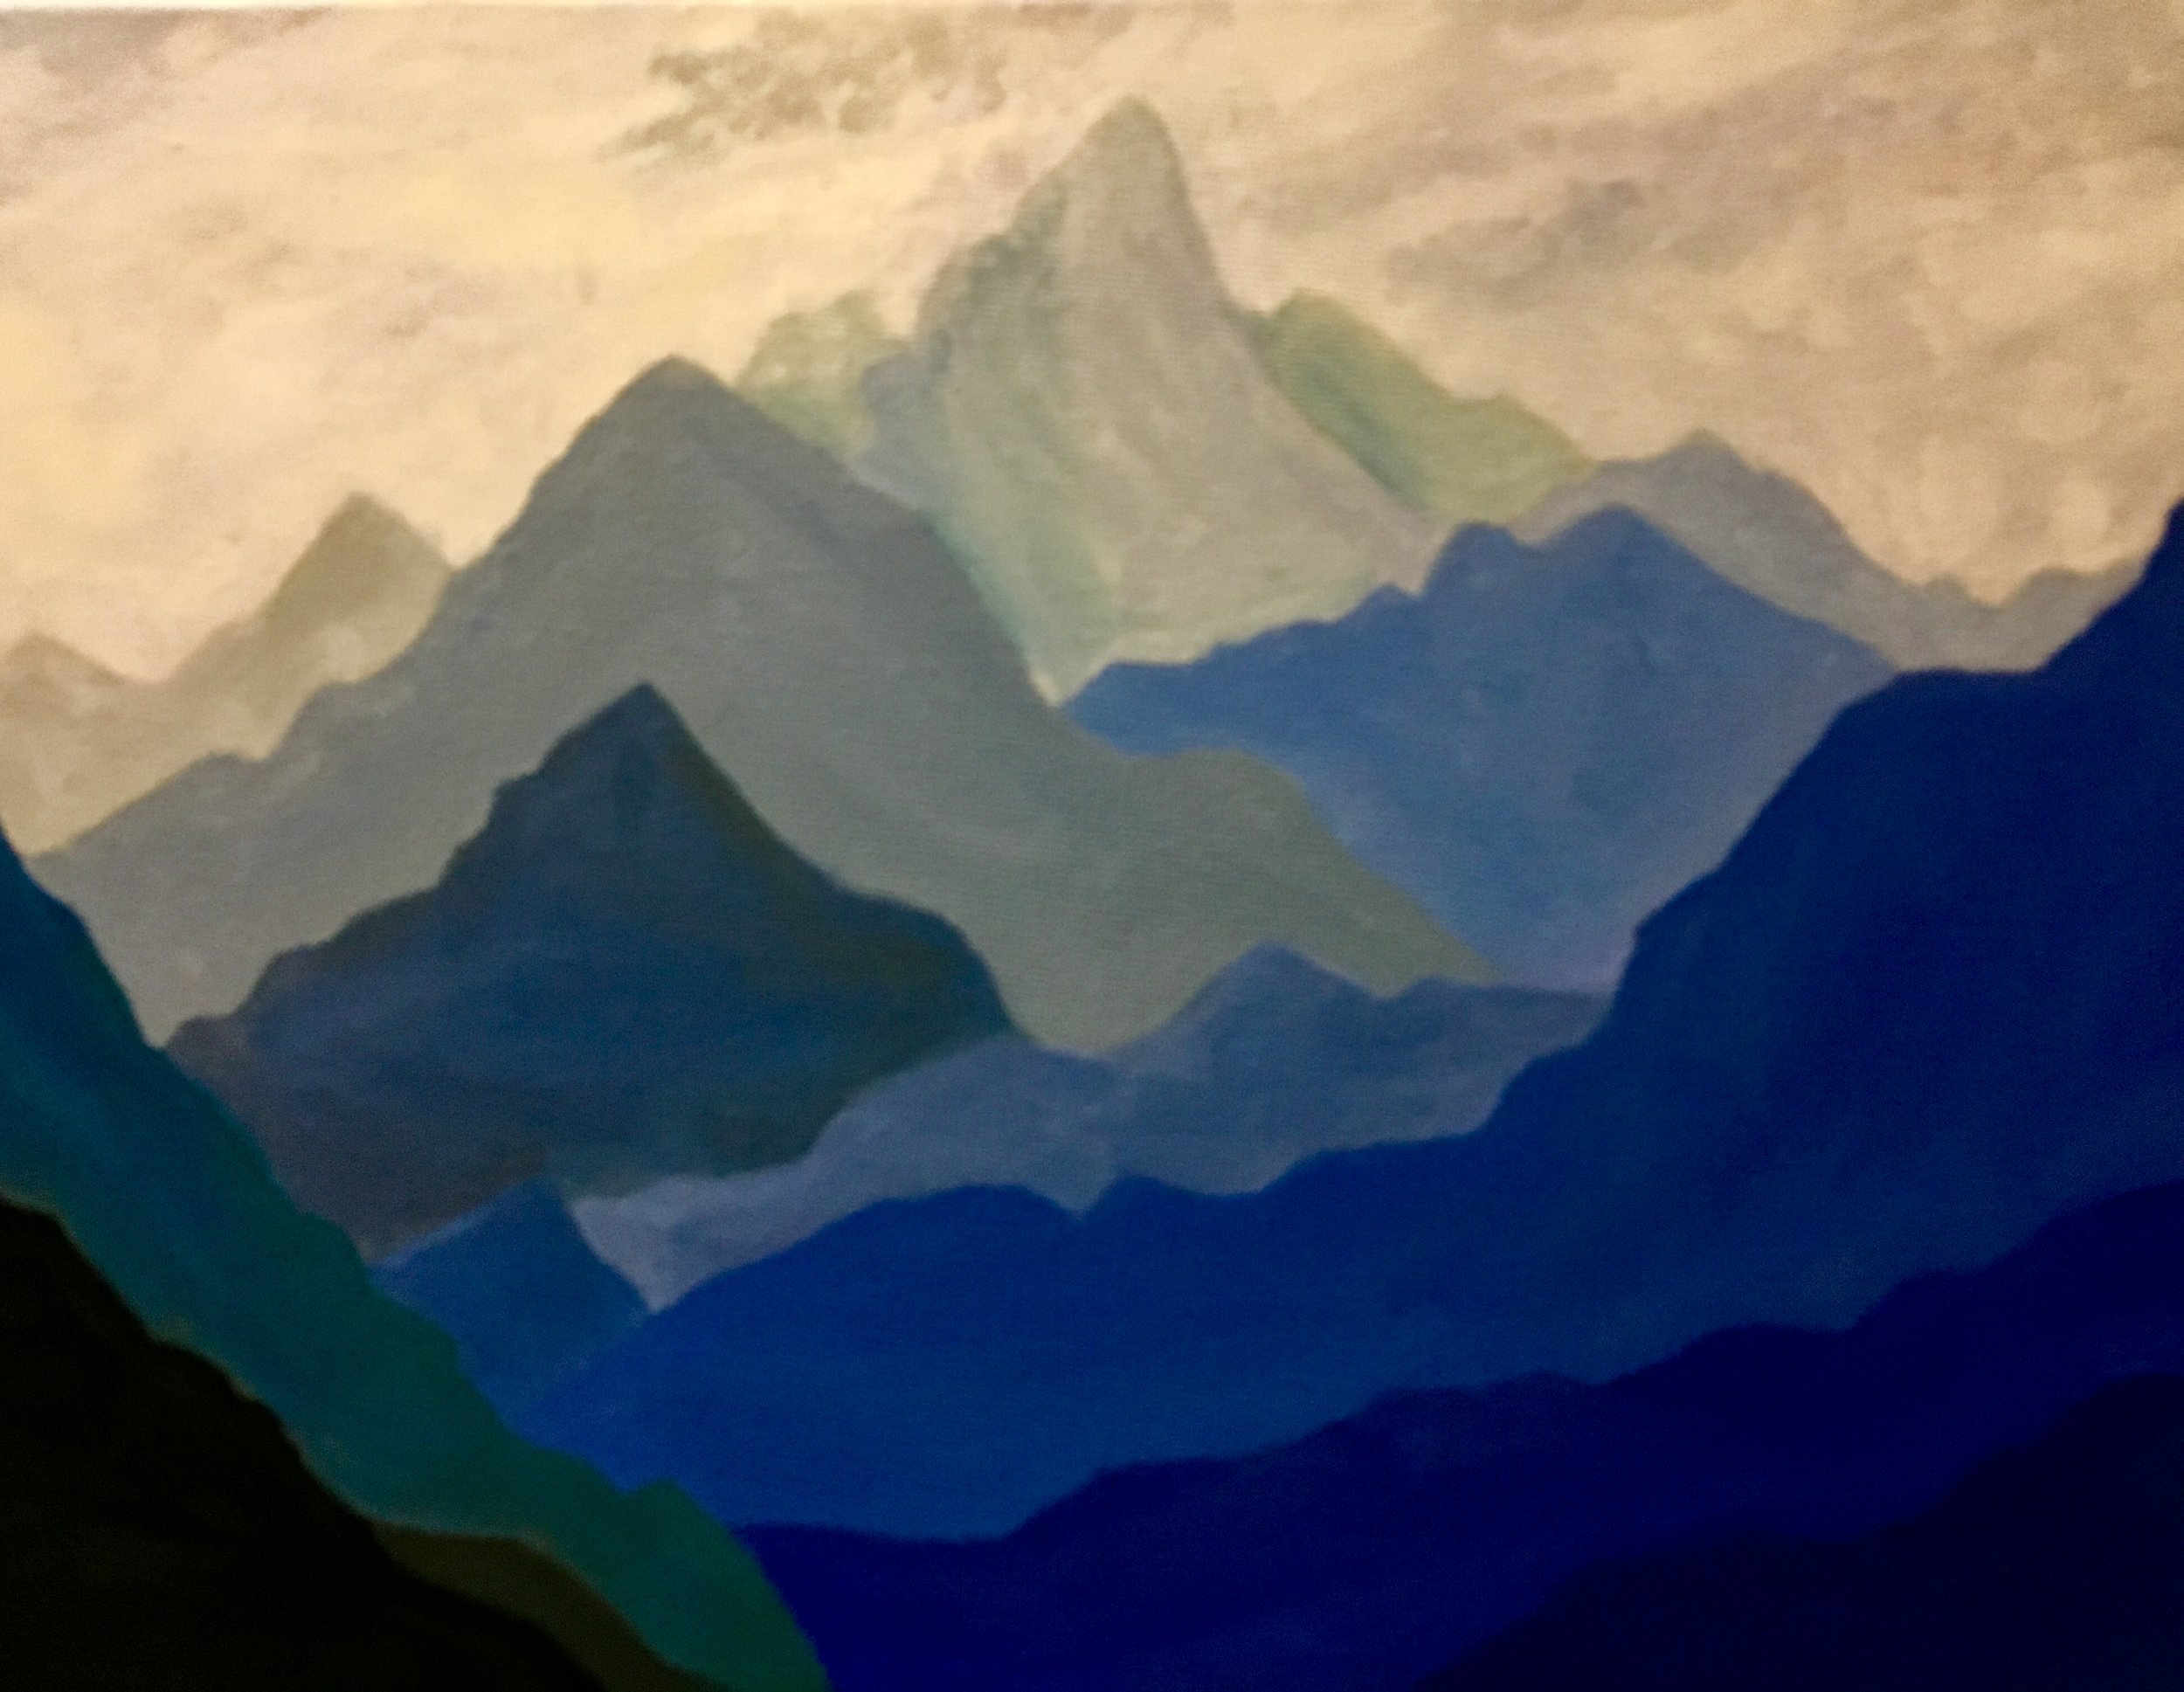 AZURE    Is a beautiful shades of blue mountain completed in Oil. It is part of the series.  This painting will be at the Northland Public Library, Pittsburgh, PA from 6/1/19 - 8/26/19